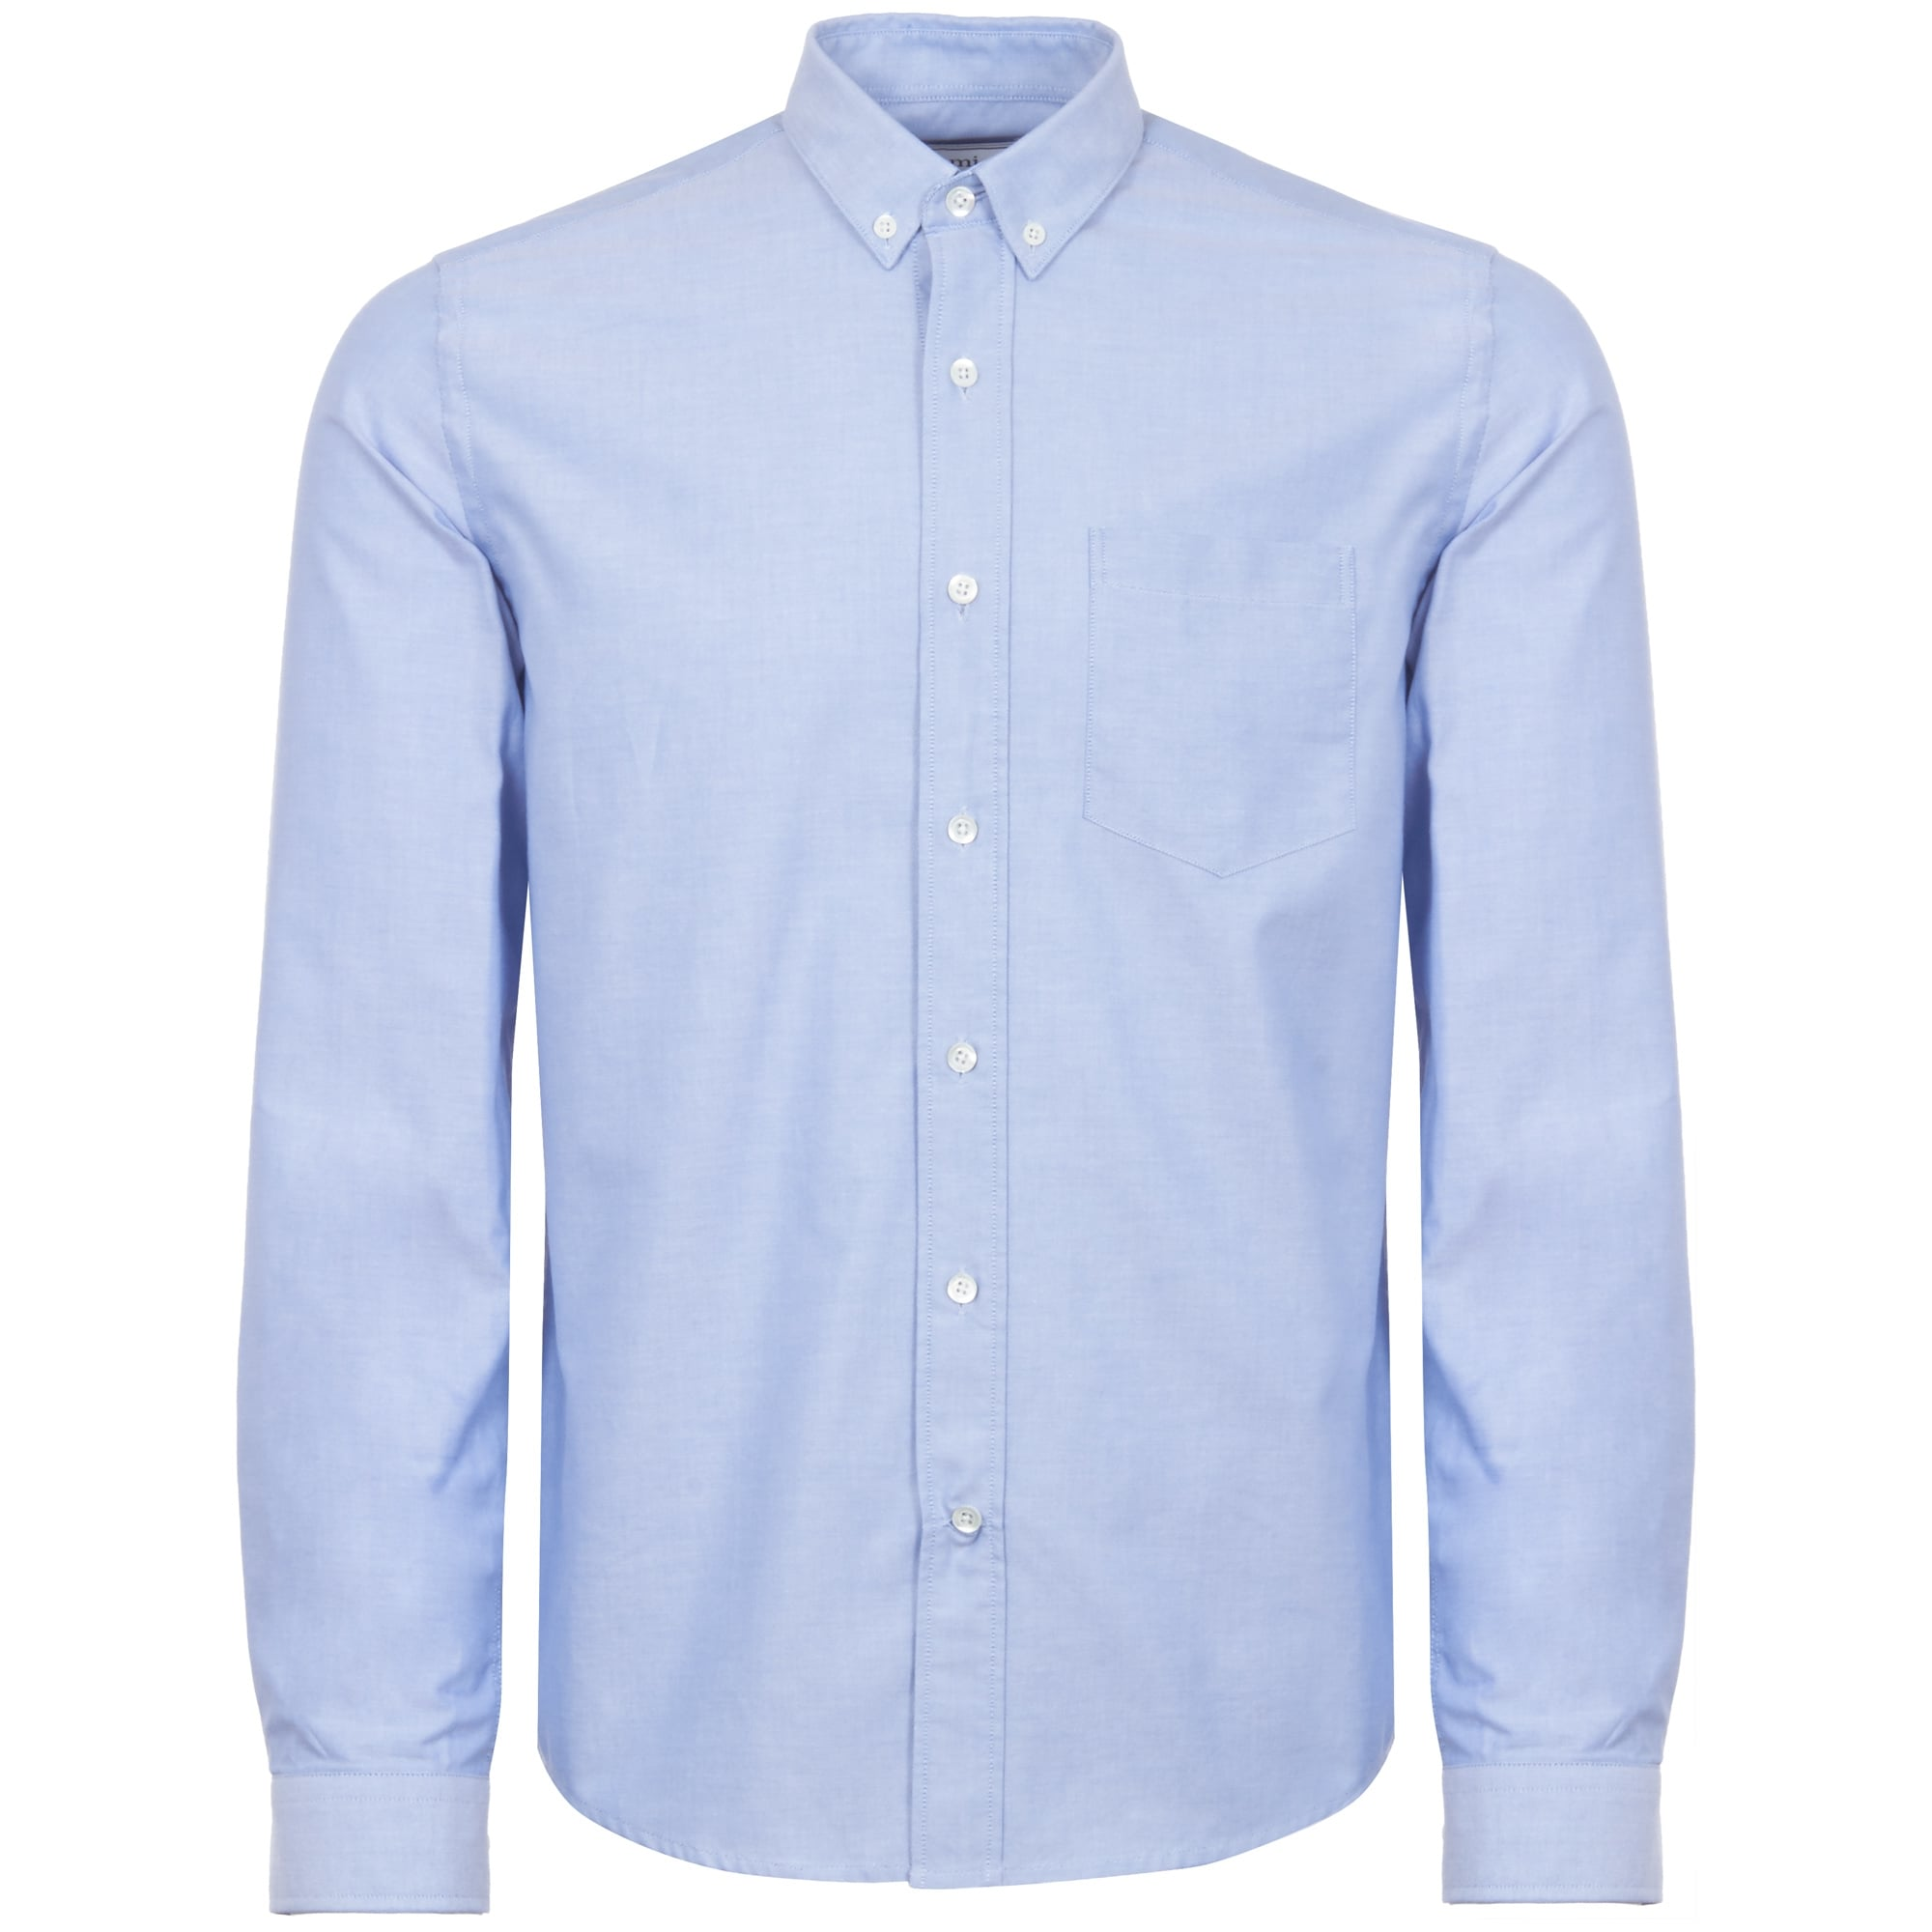 462a3399c9c AMI Button down OXFORD shirt - Sky blue BSRC03-459